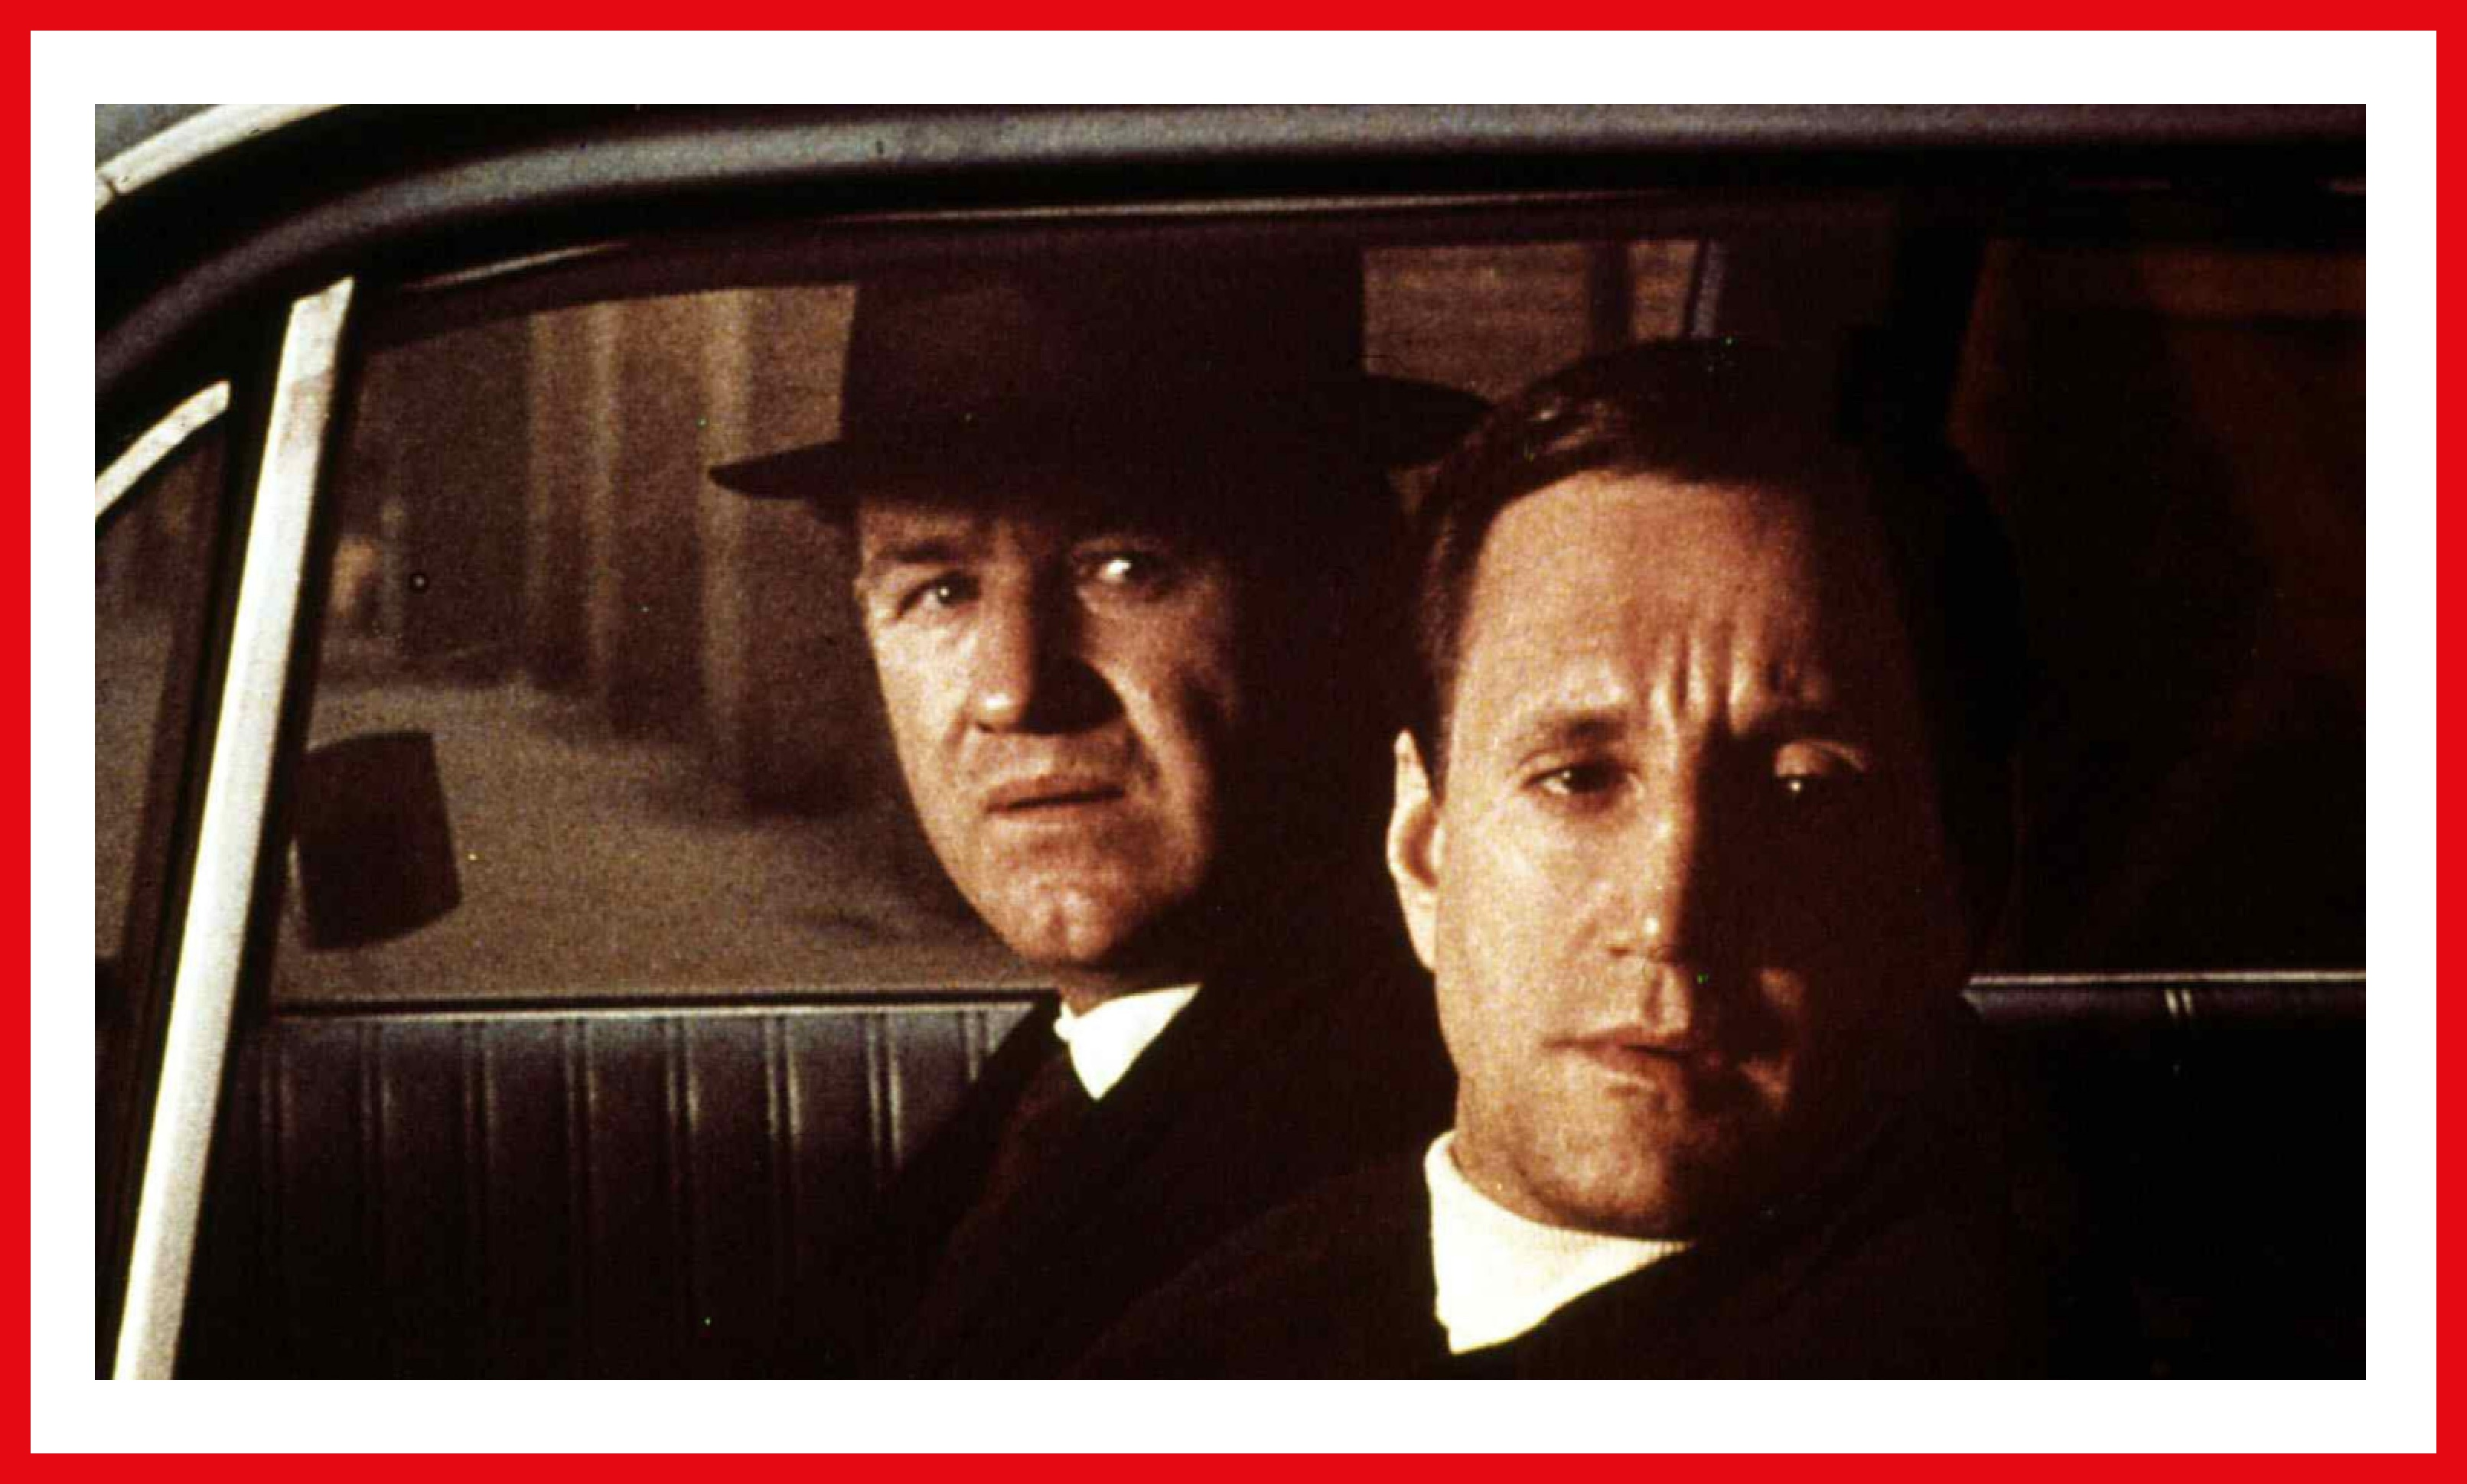 Hackman and Scheider seem to be on to something as Jimmy Doyle and Buddy Russo.